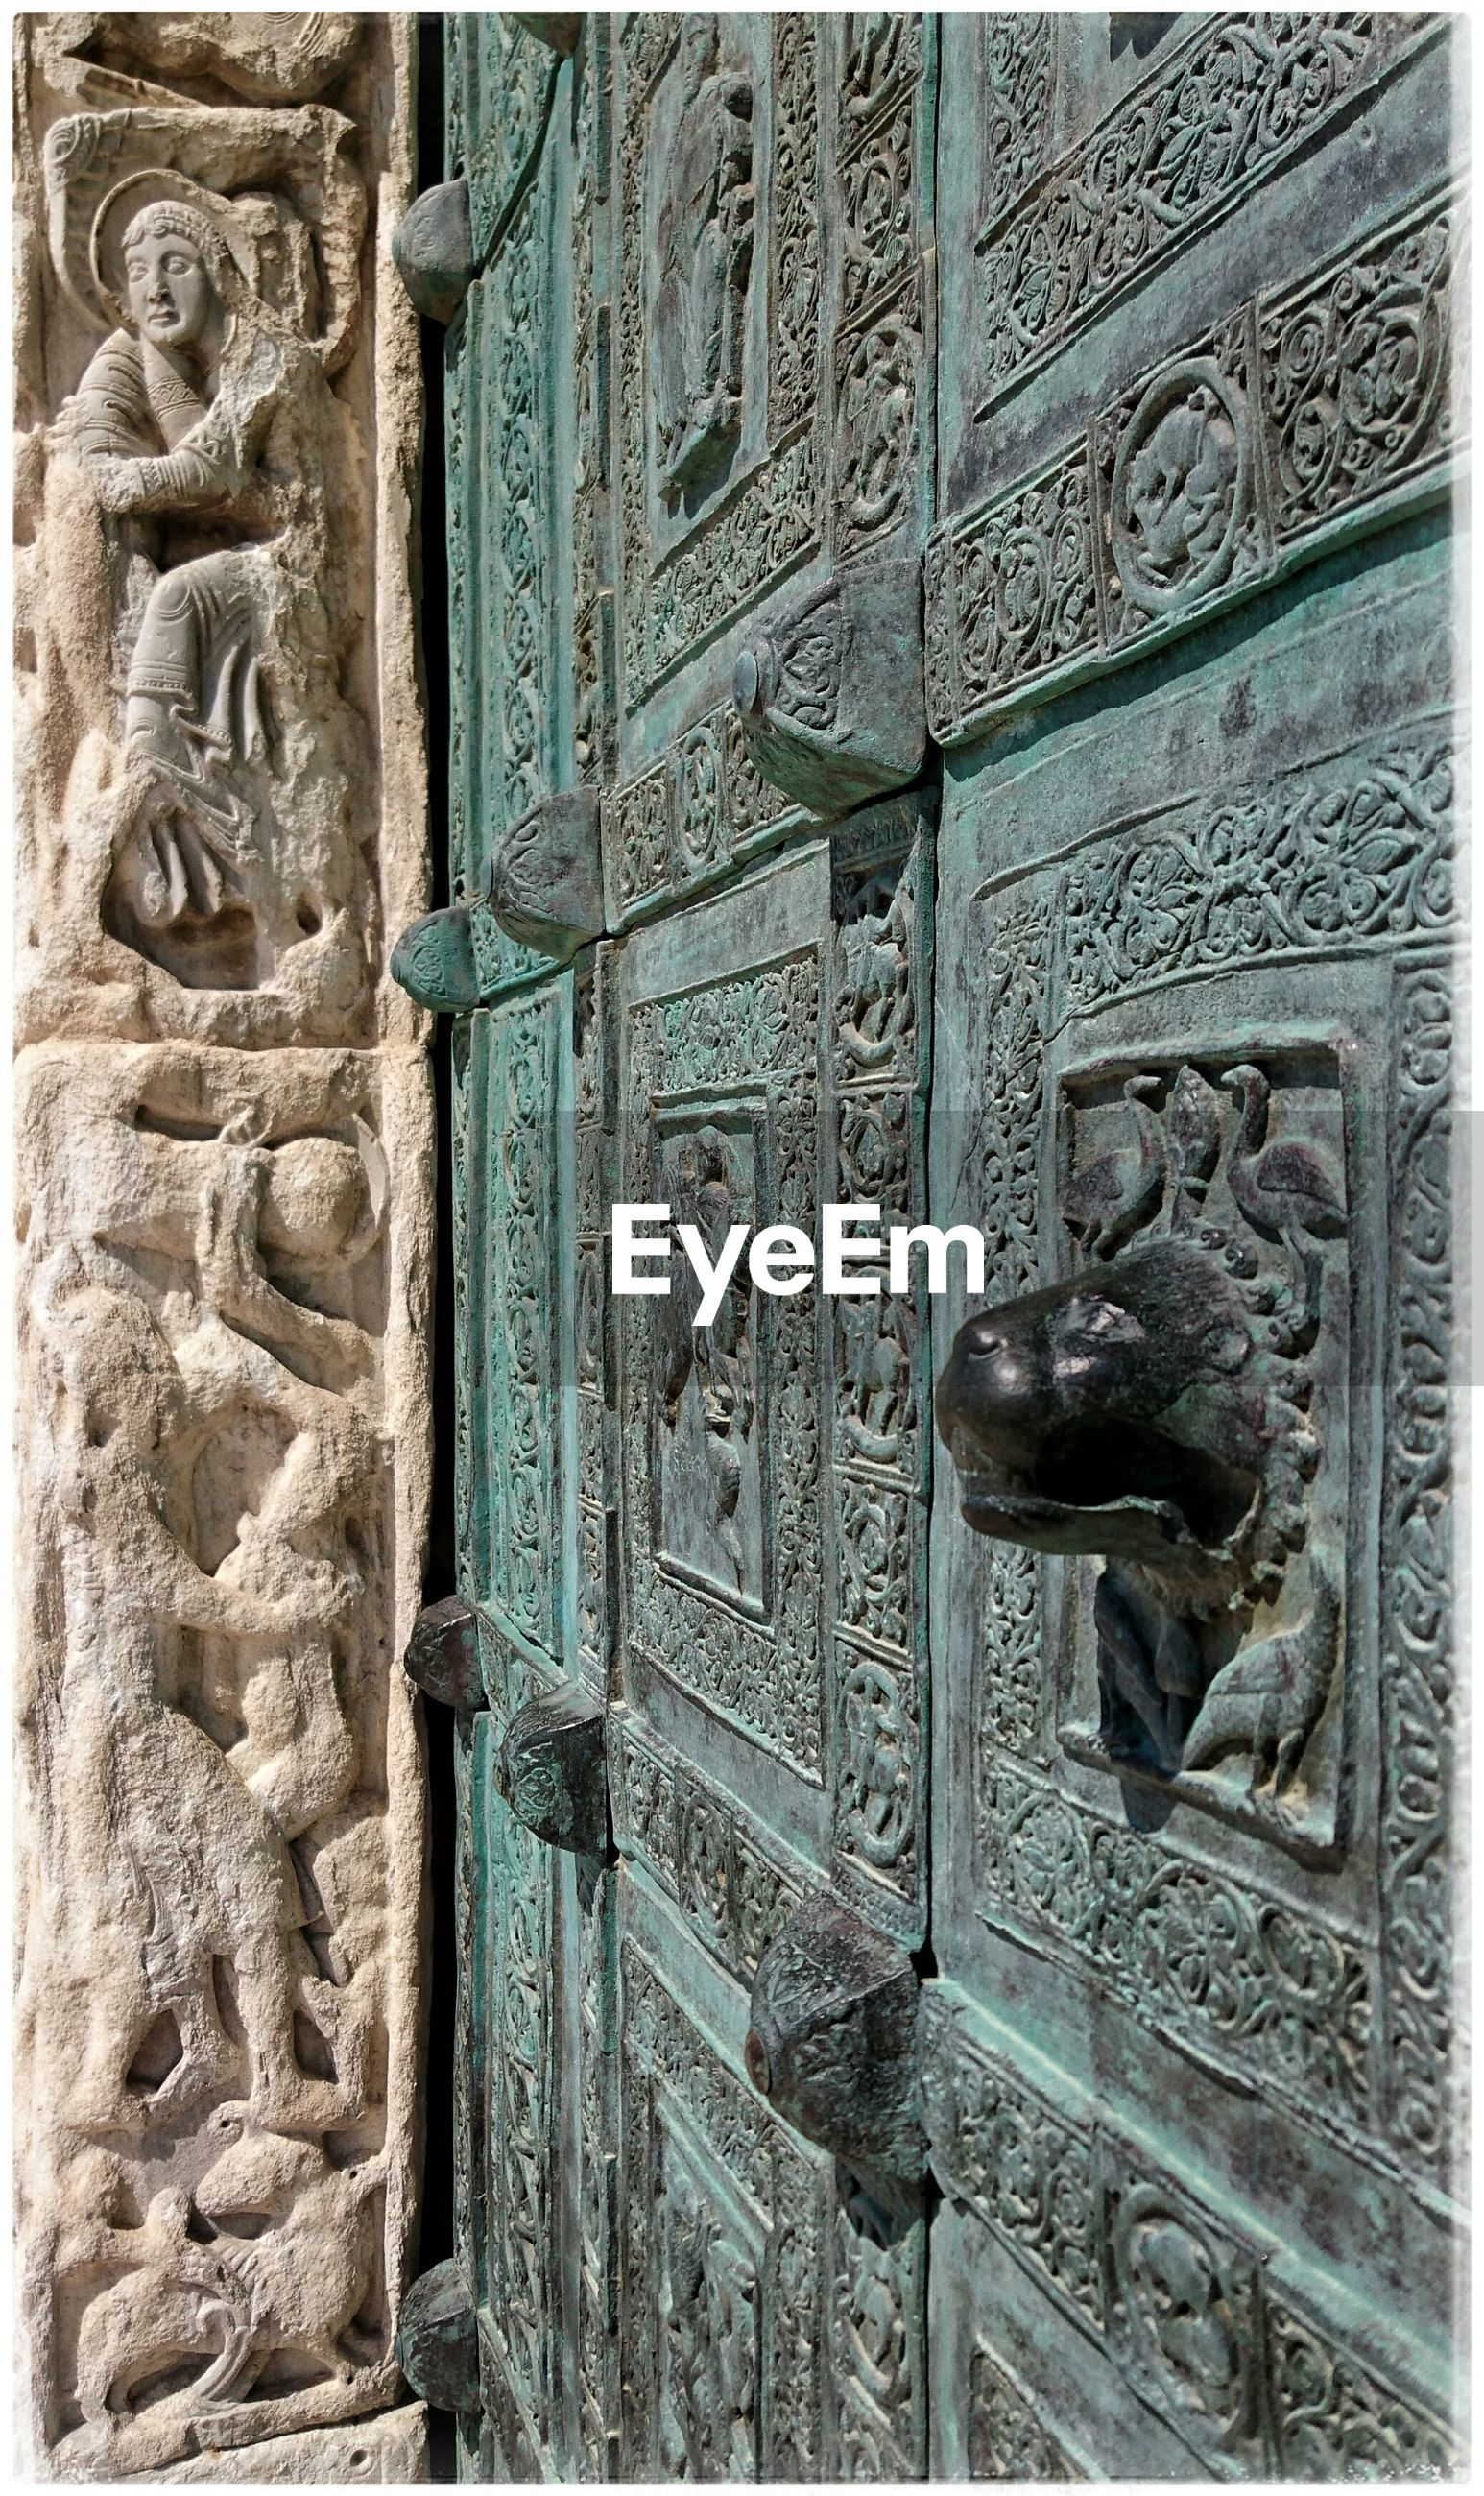 architecture, built structure, art and craft, art, building exterior, door, ornate, old, carving - craft product, creativity, history, wall - building feature, design, closed, window, human representation, pattern, close-up, wall, day